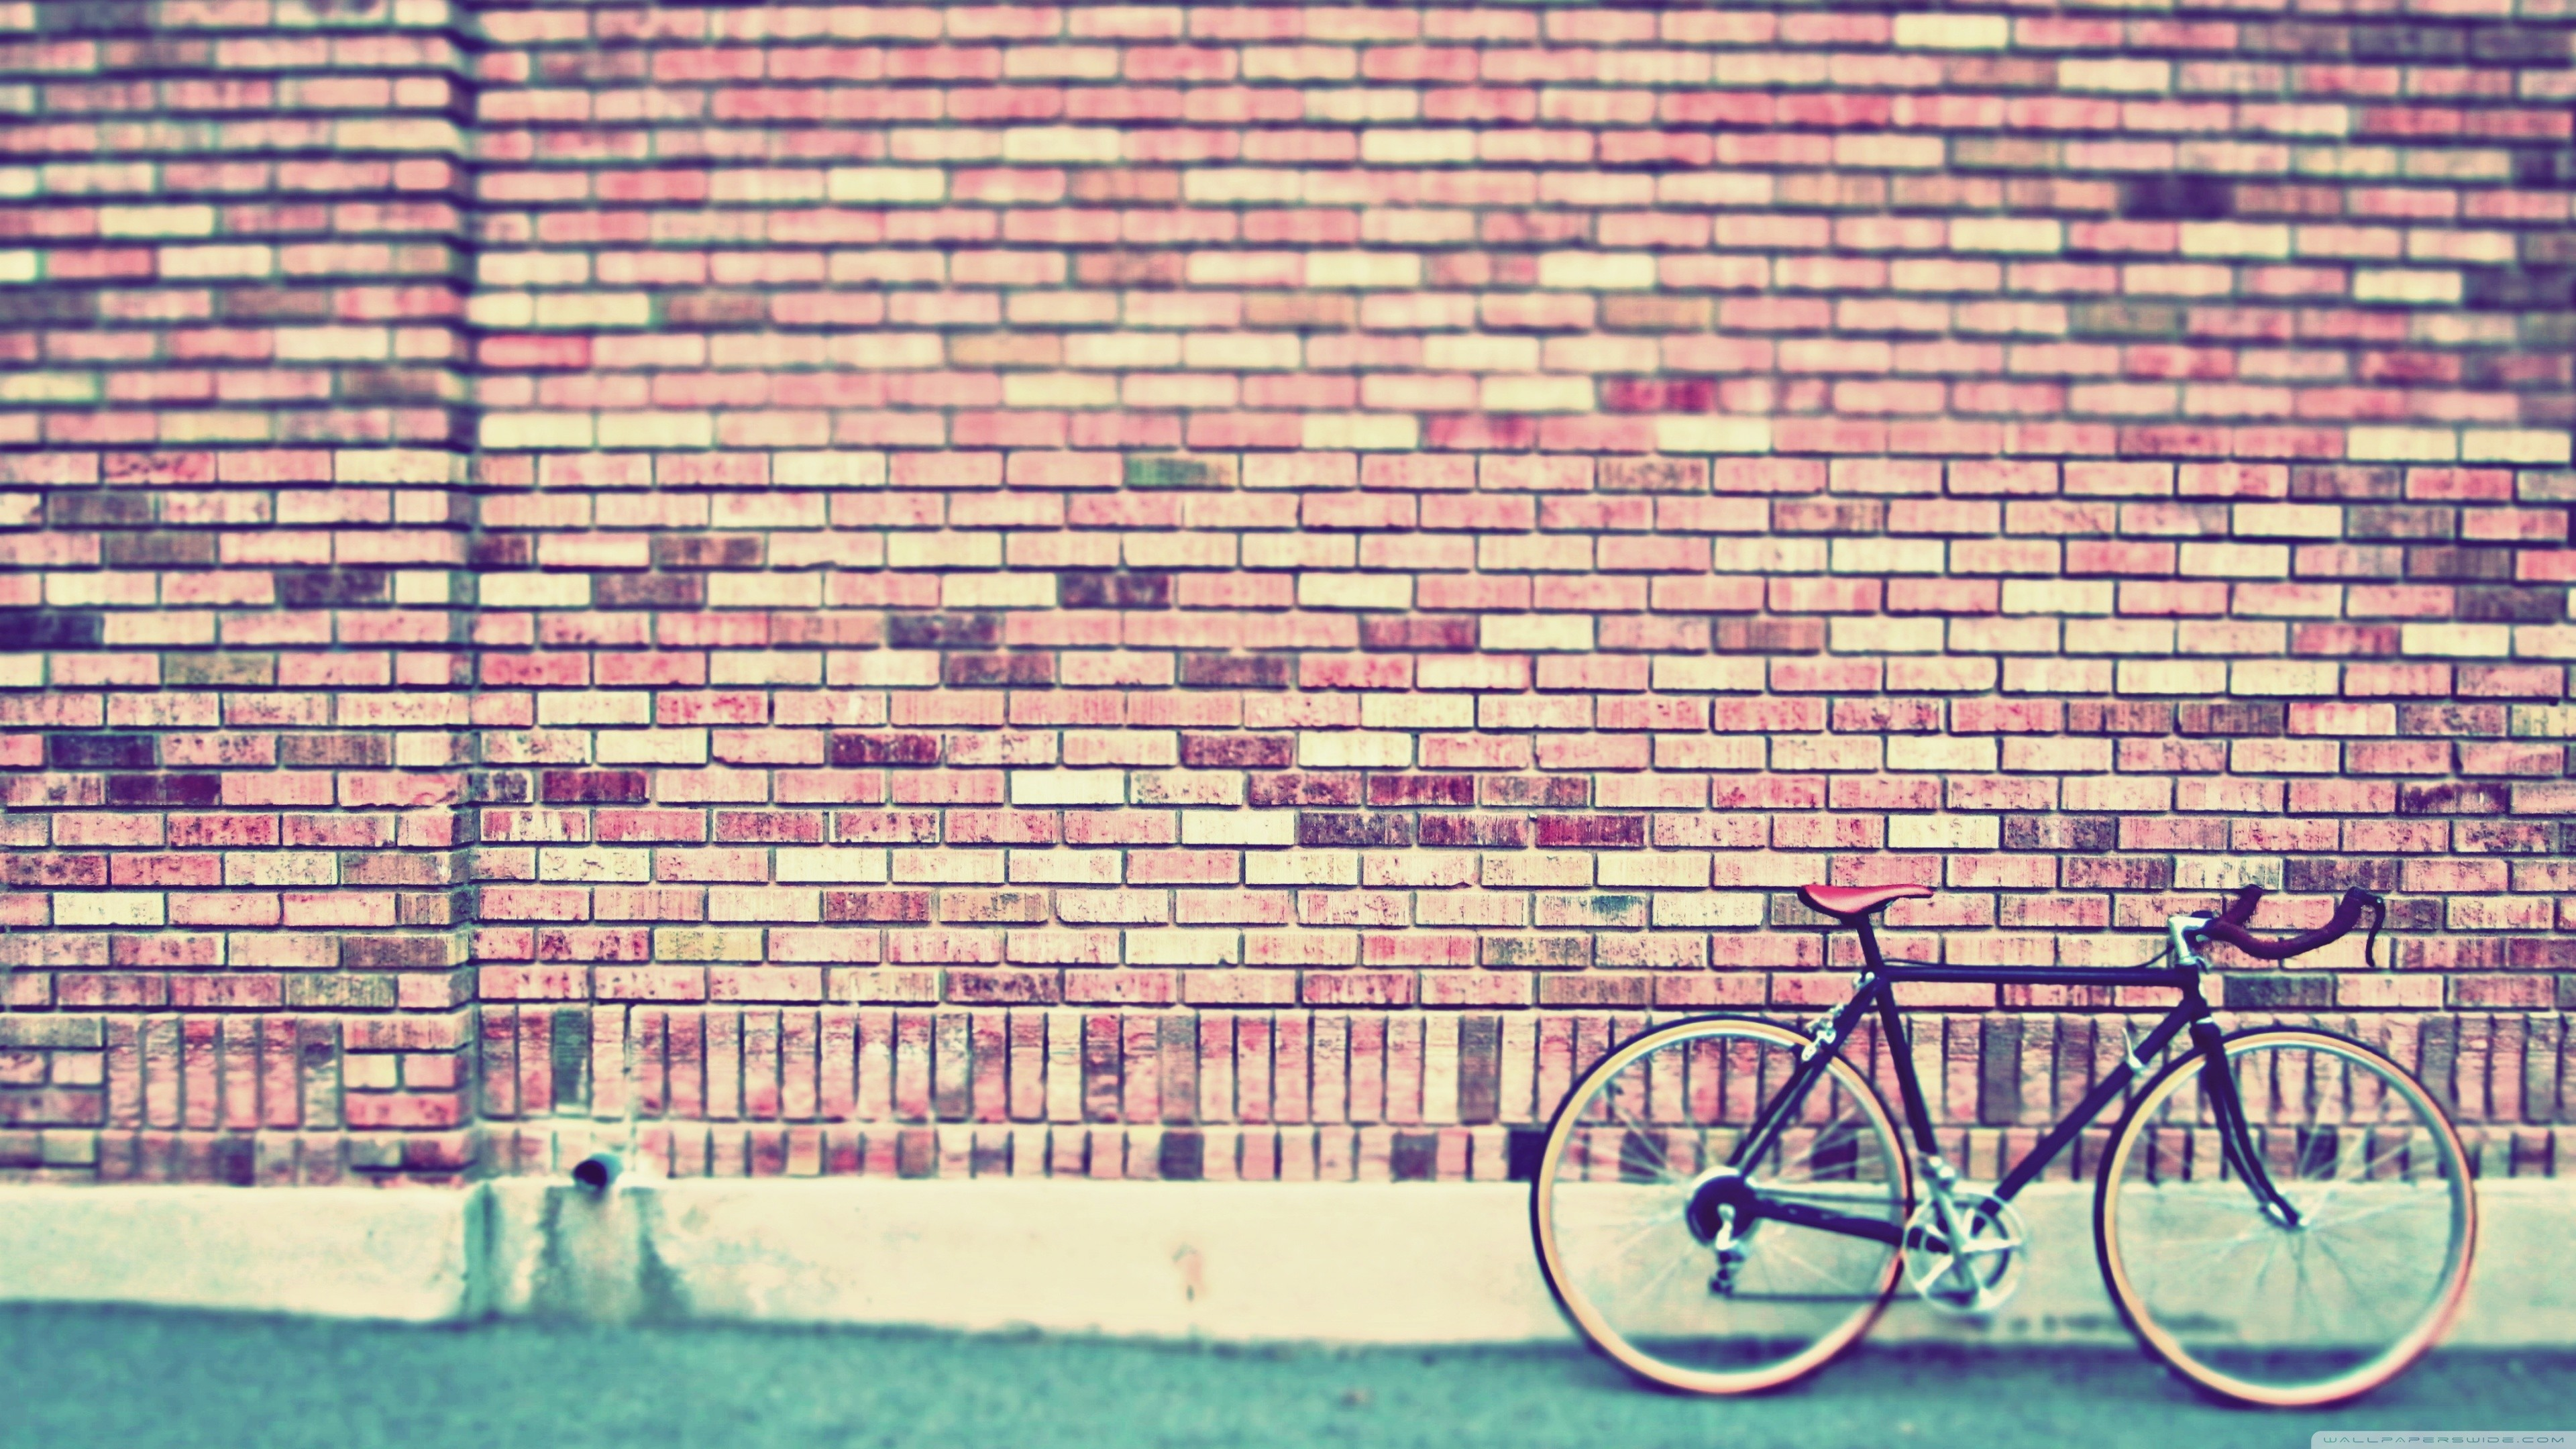 Hipster Wallpapers Tumblr Windpus Wapper Other Picture